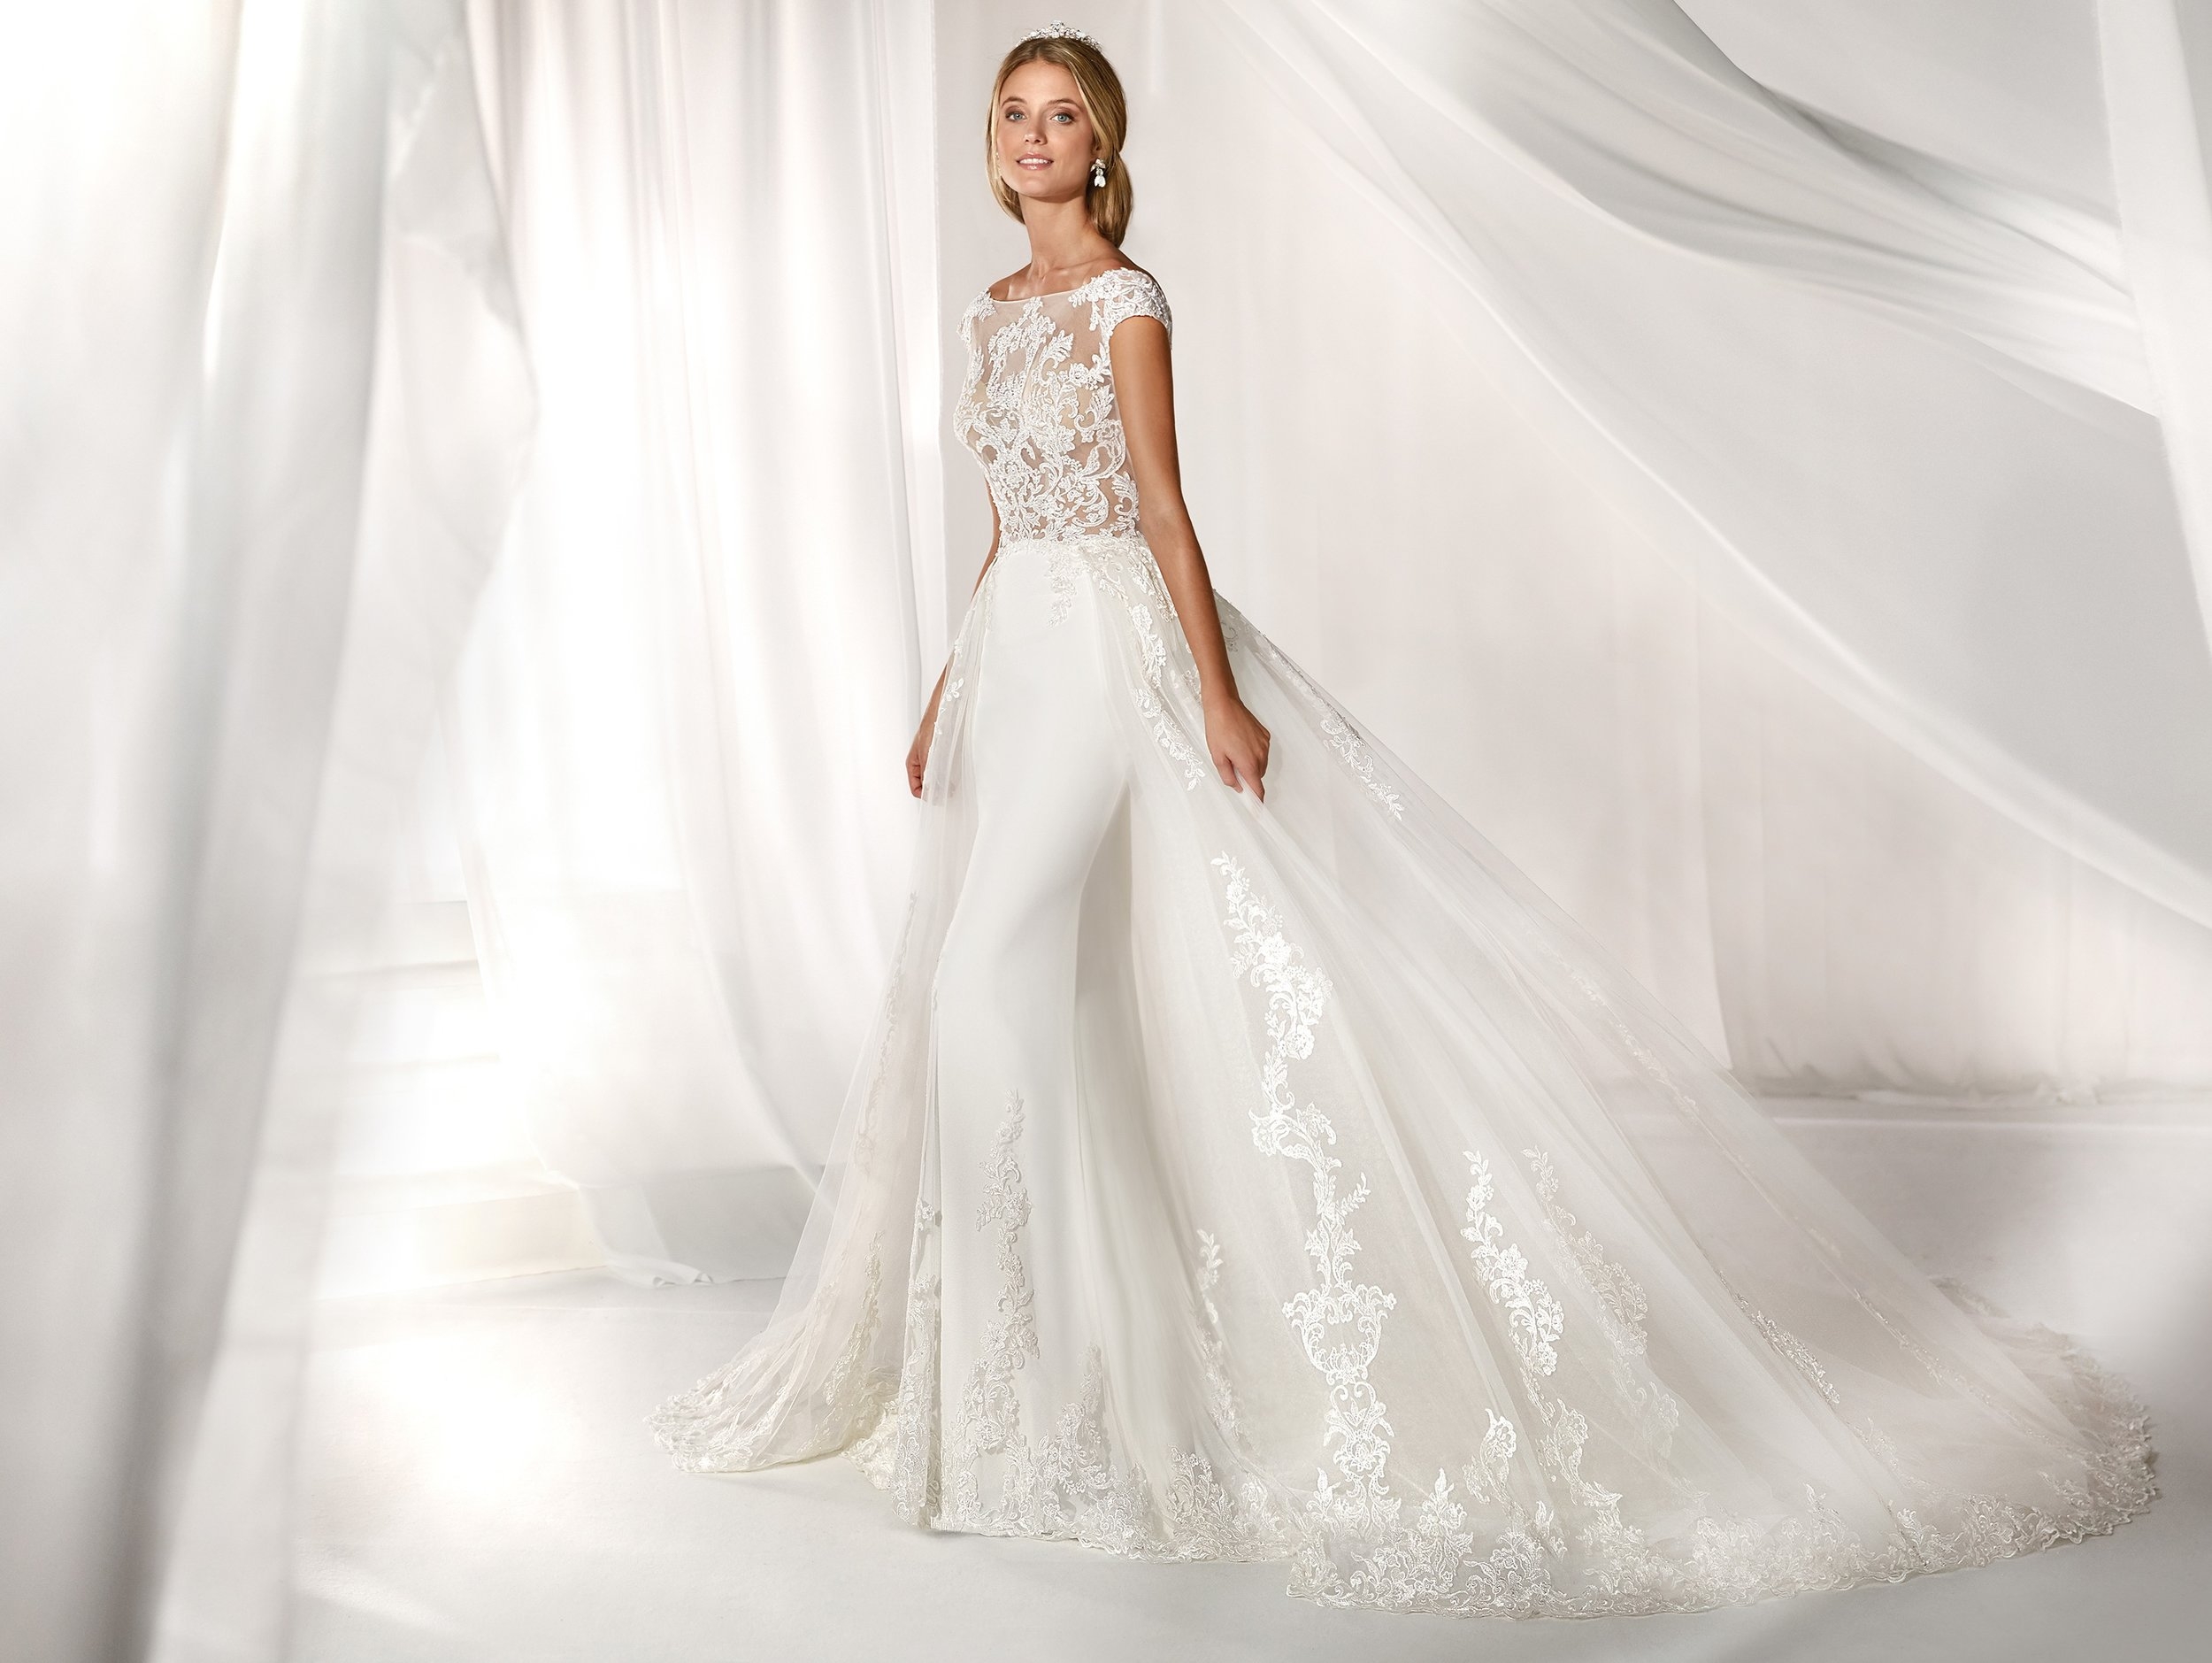 Nine Trends In 2019 And 2020 Wedding Dresses Bespoke Beloved,Low Cost Wedding Dresses Online